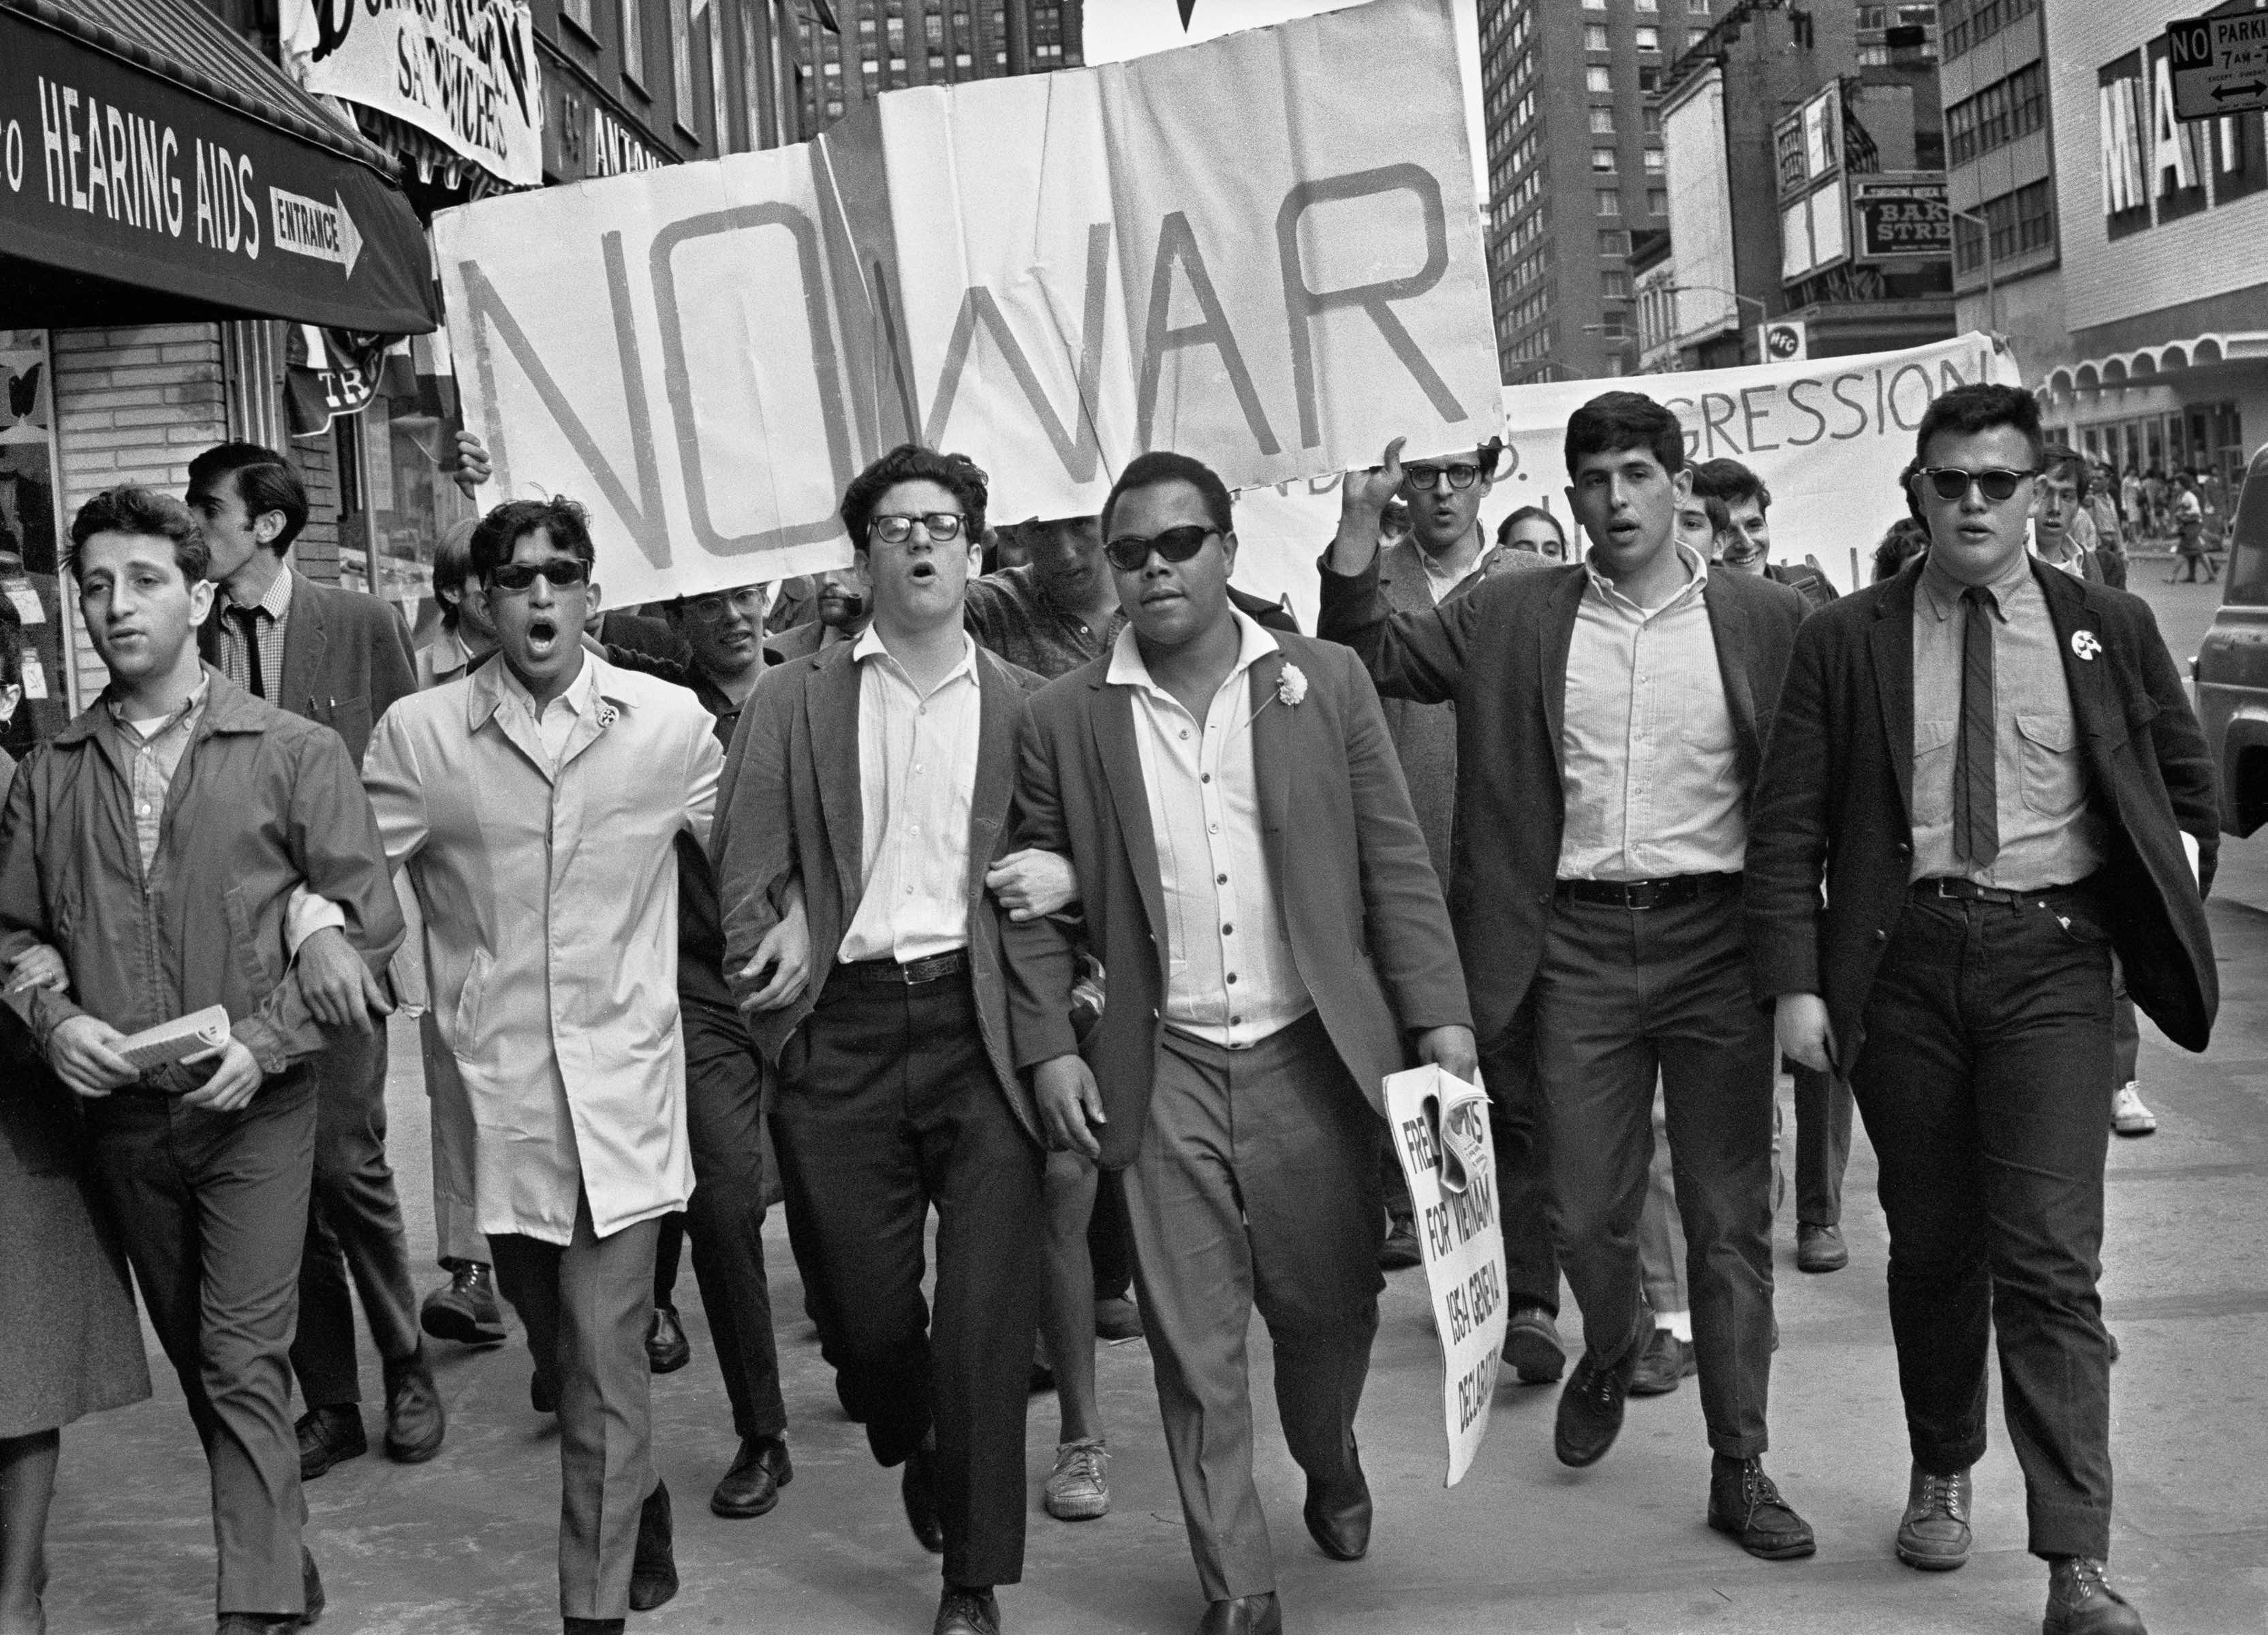 A visual history of resistance in New York City